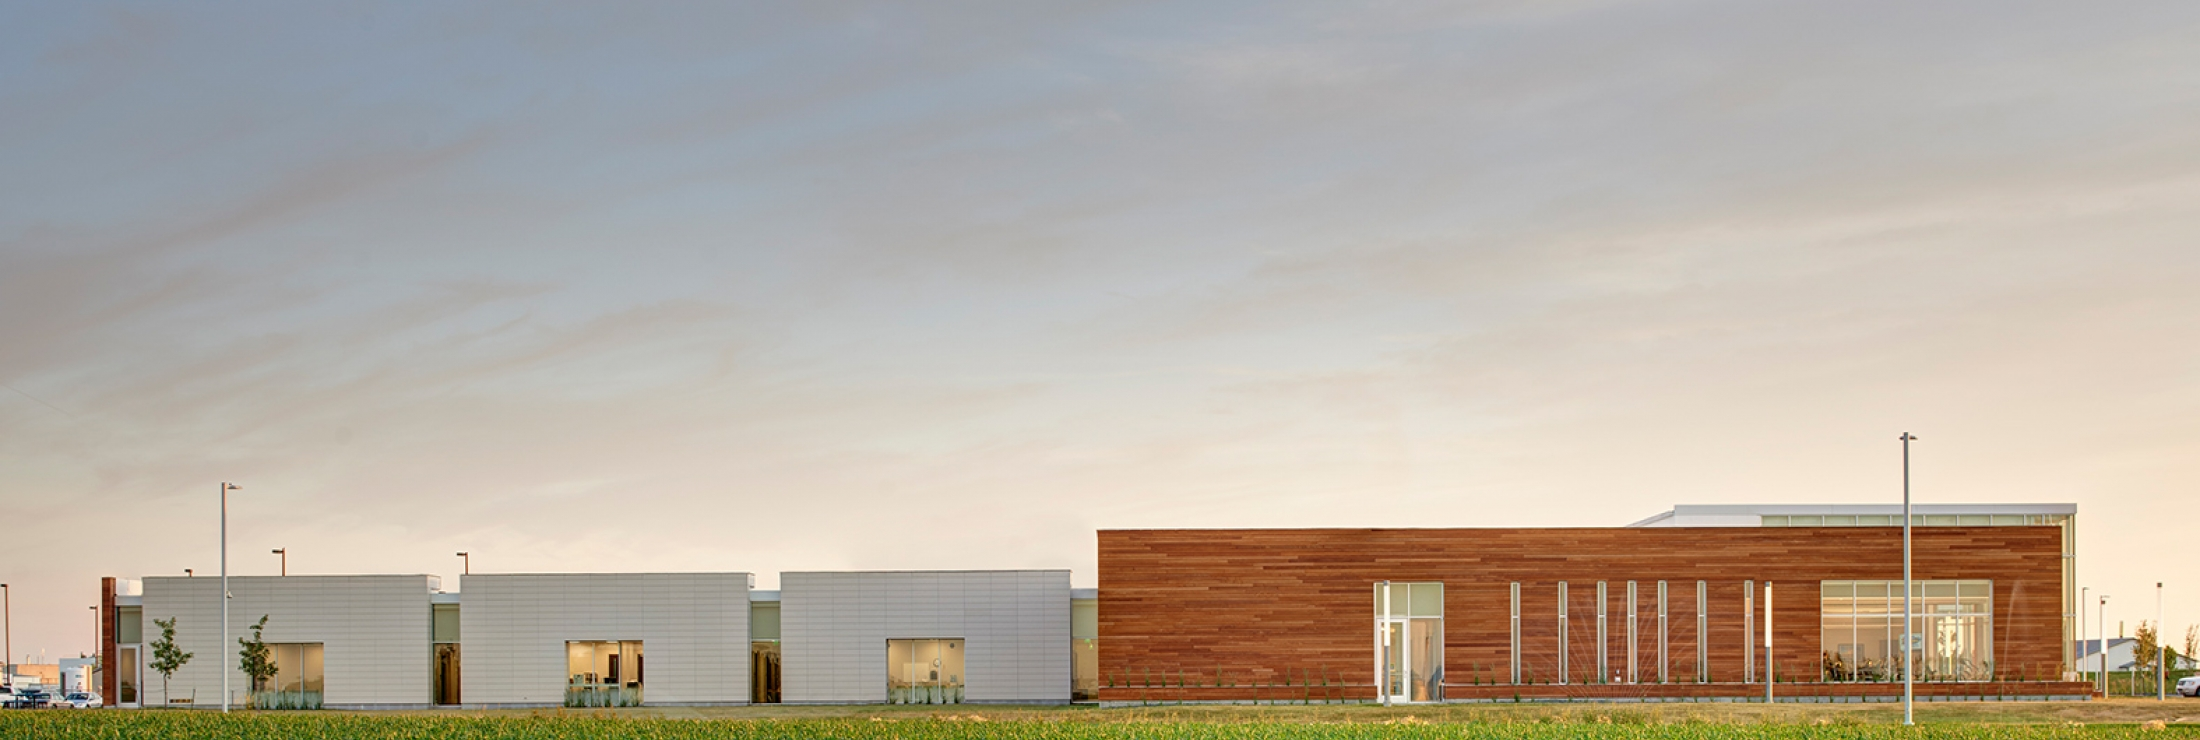 Cladding Corp - Story County Medical Center - Terra5